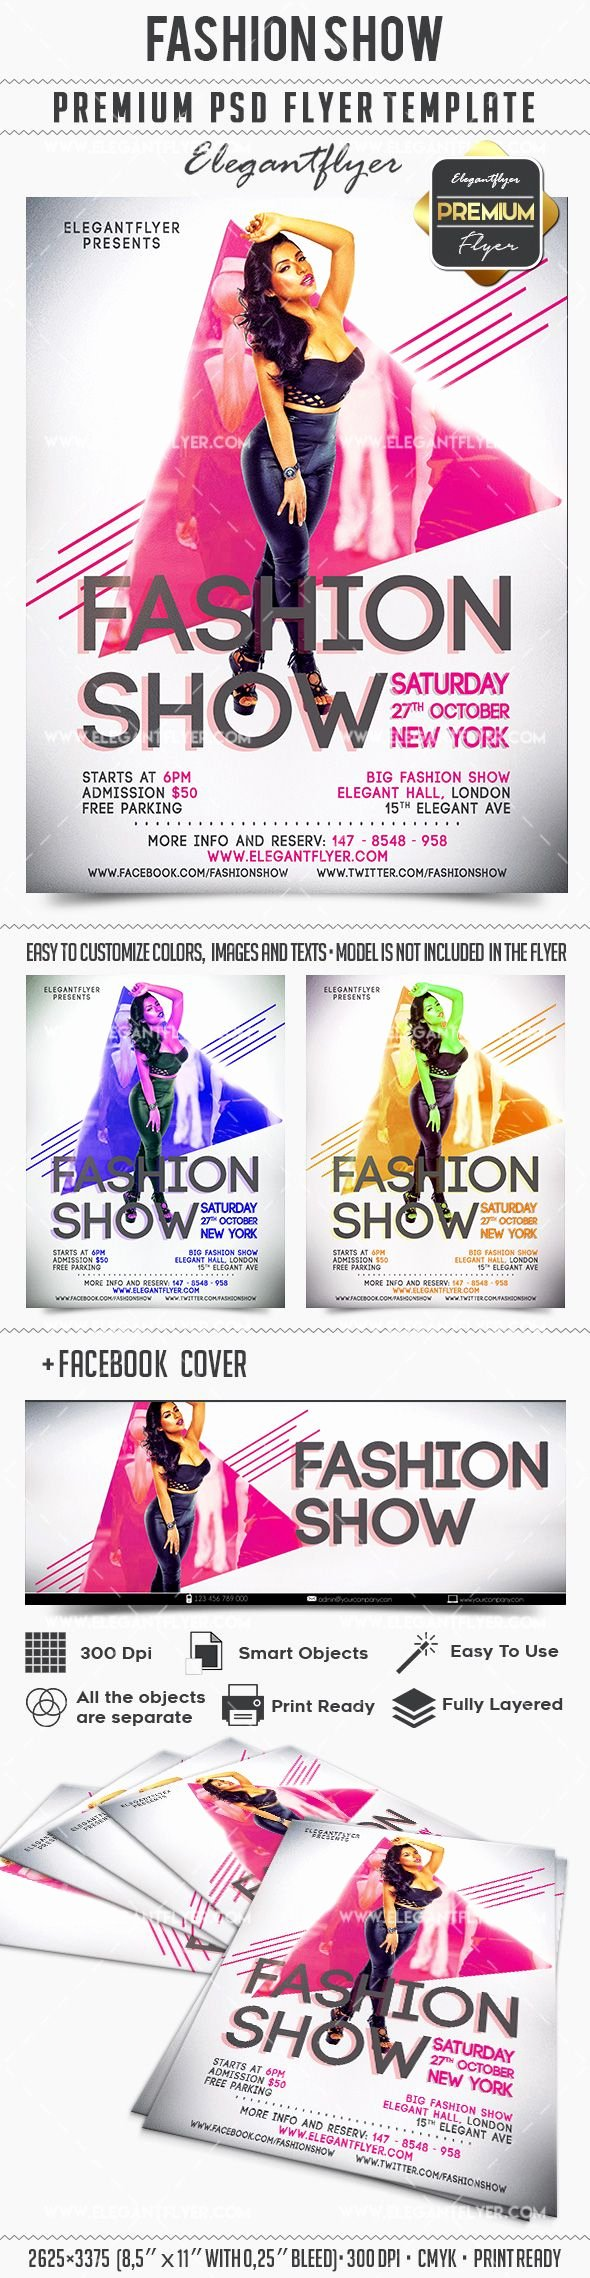 Fashion Show Flyer Template New Fashion Show Invitation Flyer Template – by Elegantflyer